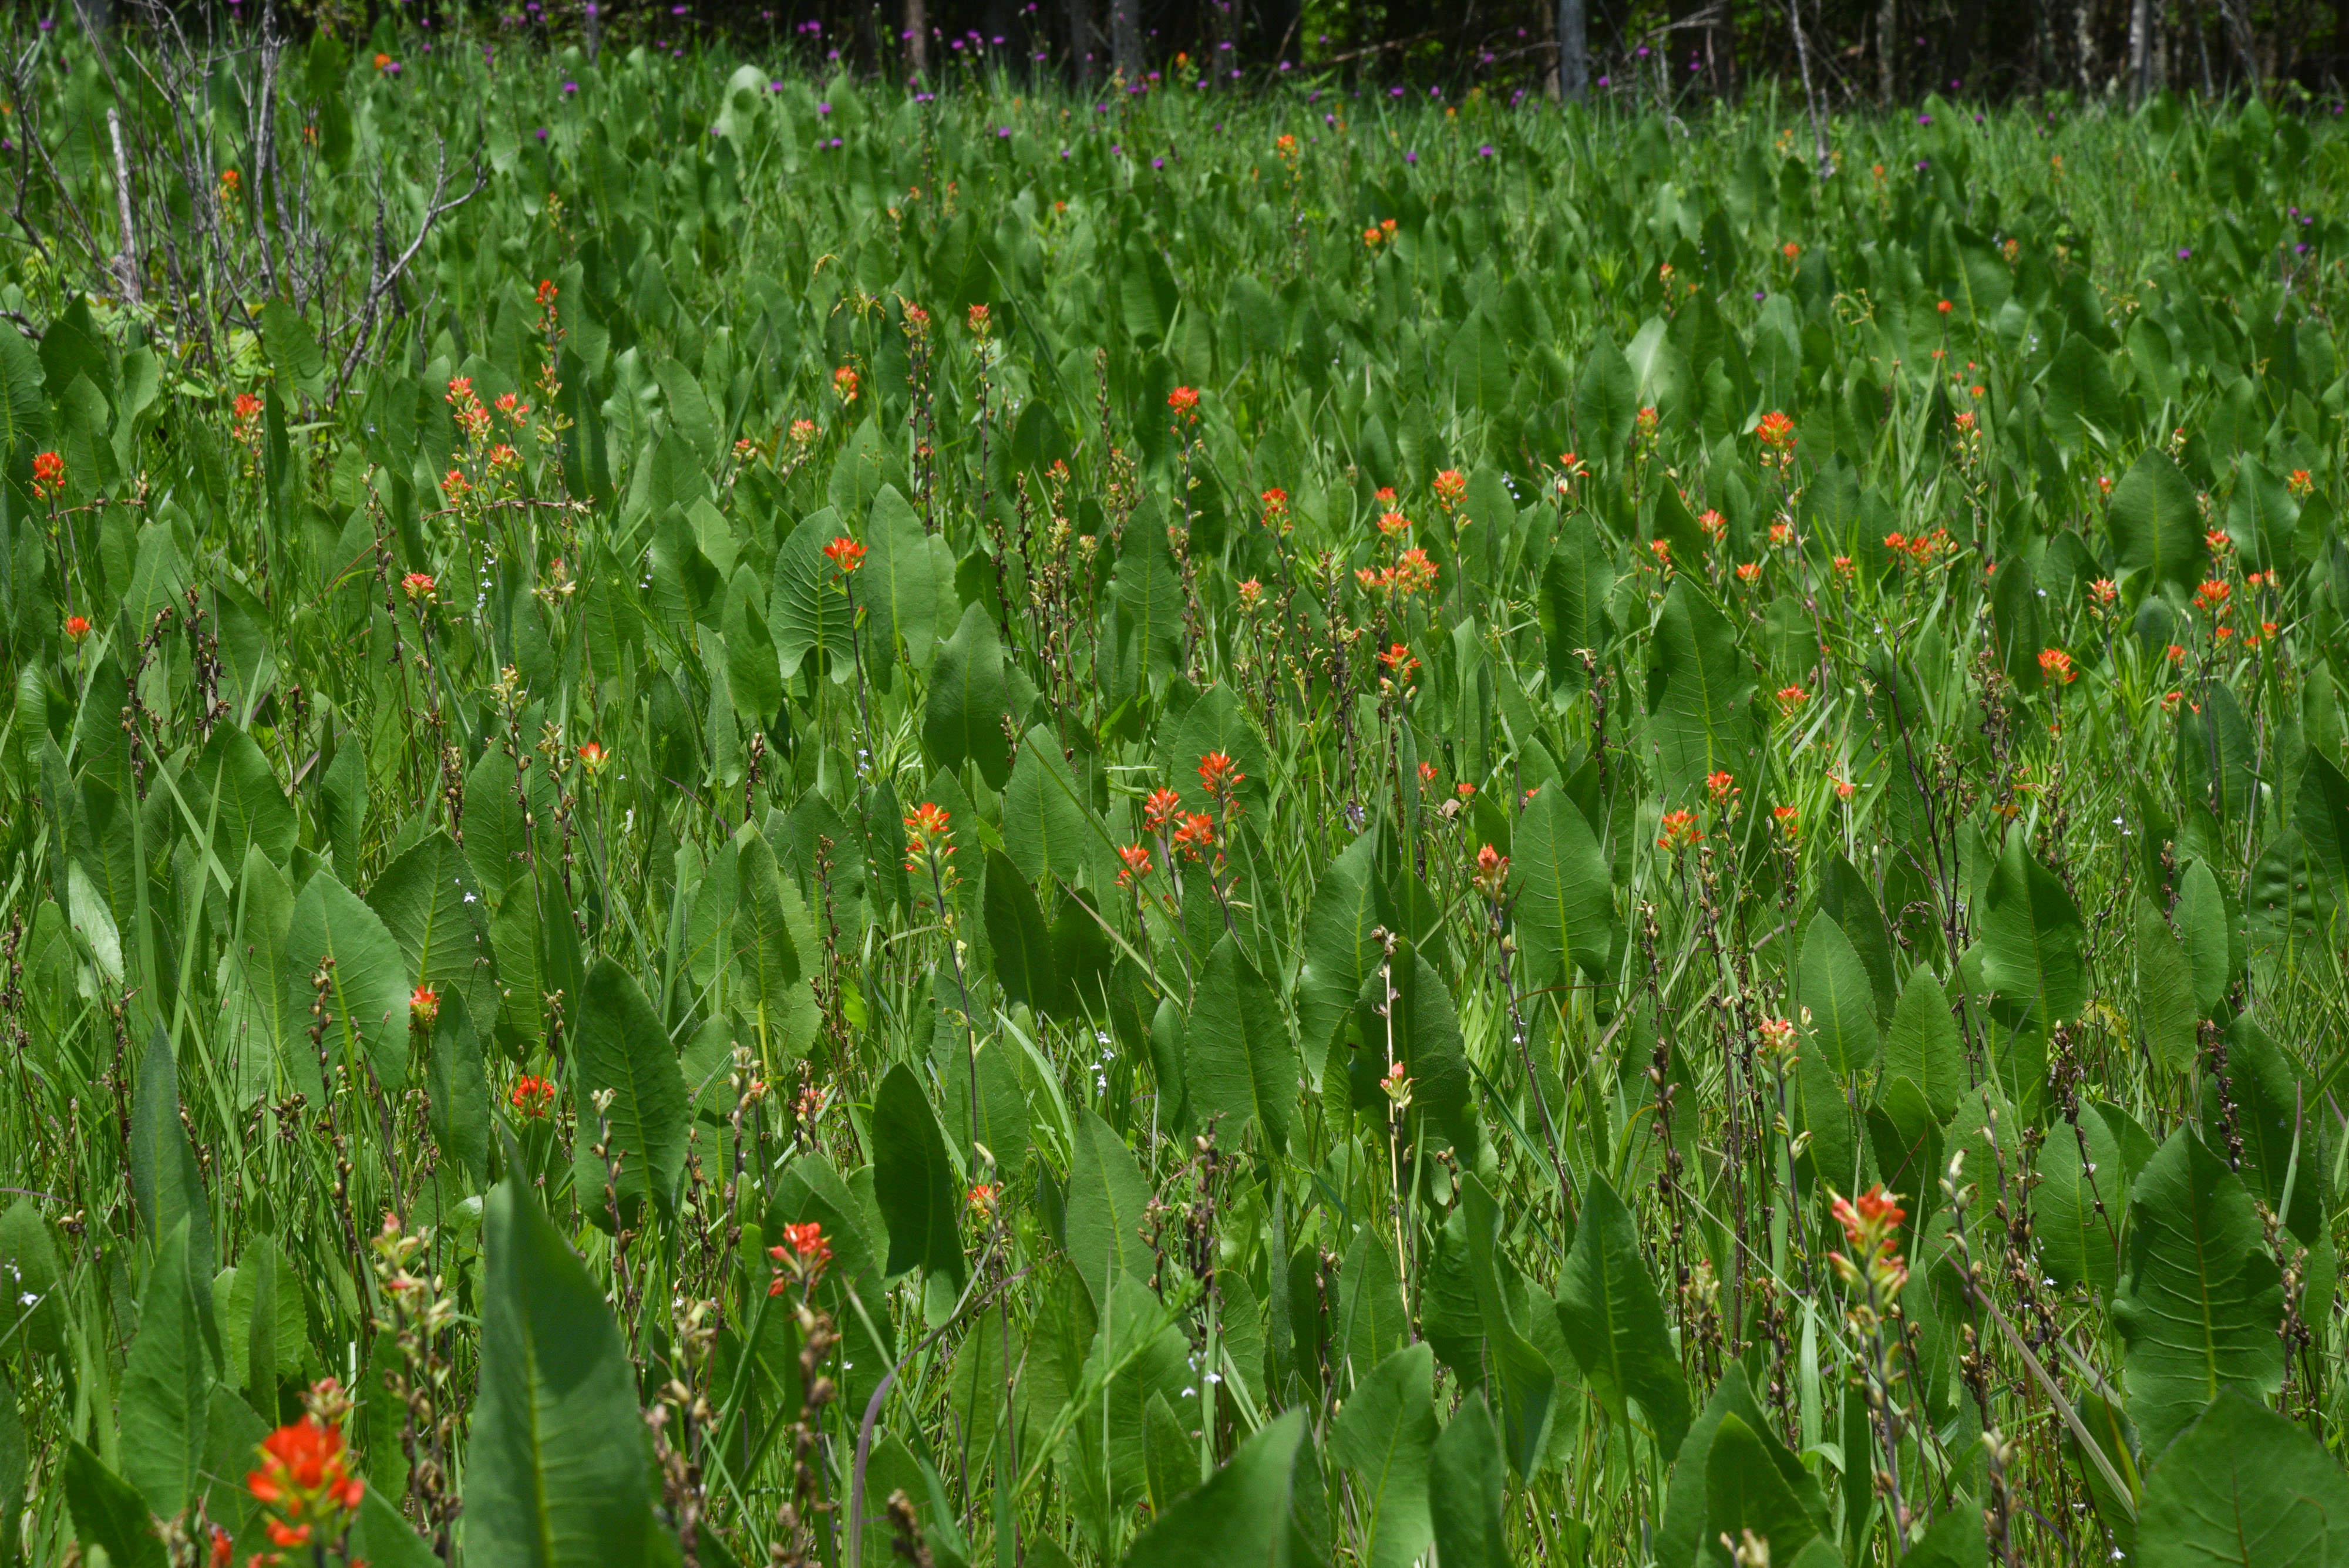 Indian paintbrush and other wildflowers bloom in one of the prairies along the trail.